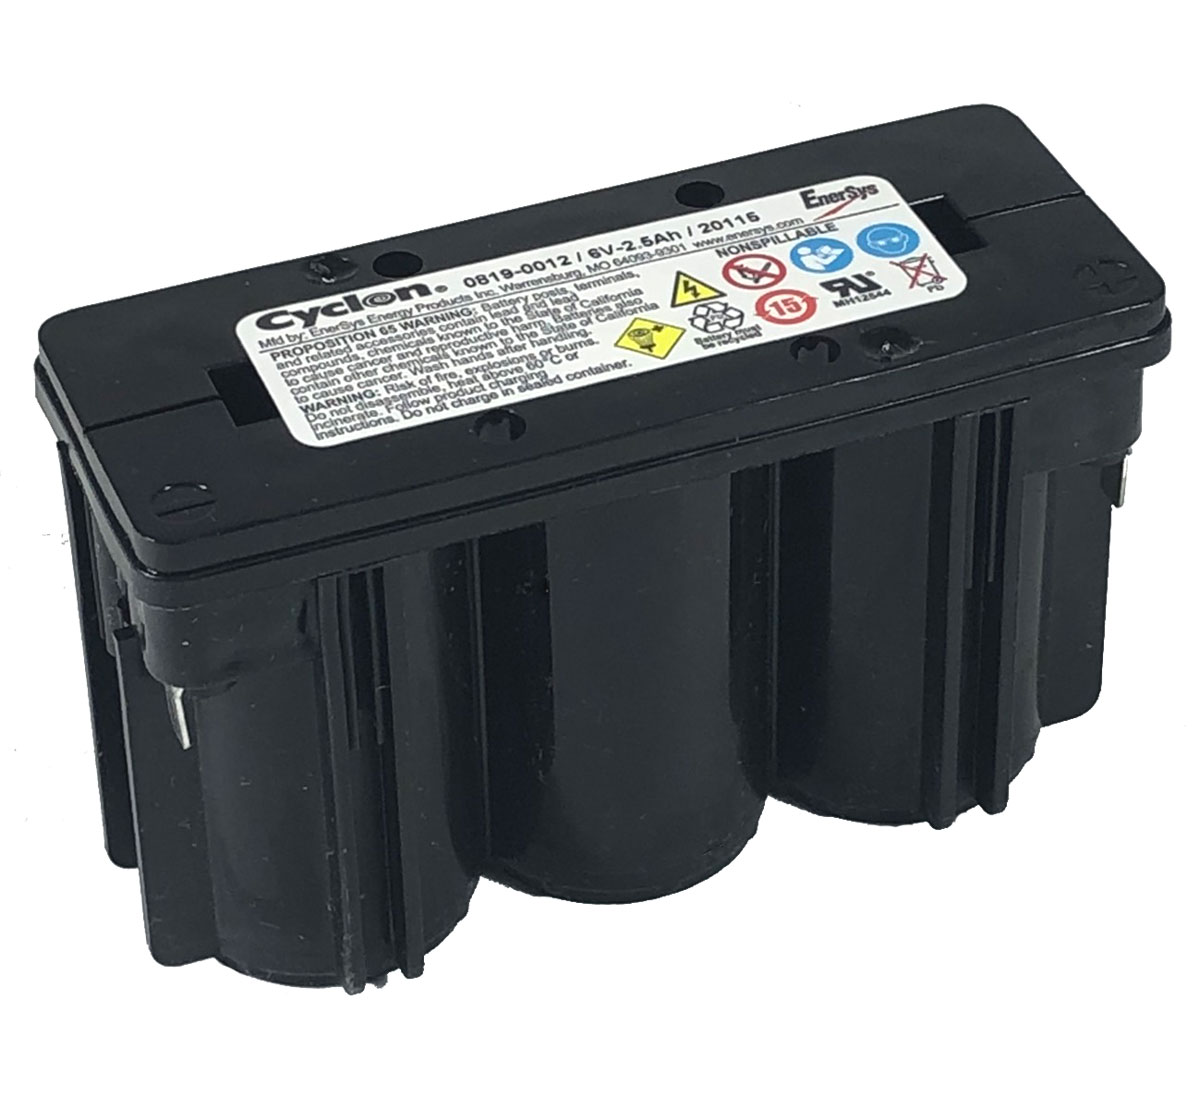 Enersys Hawker 0819-0012 Cyclon 6V 2.5Ah Monobloc Battery